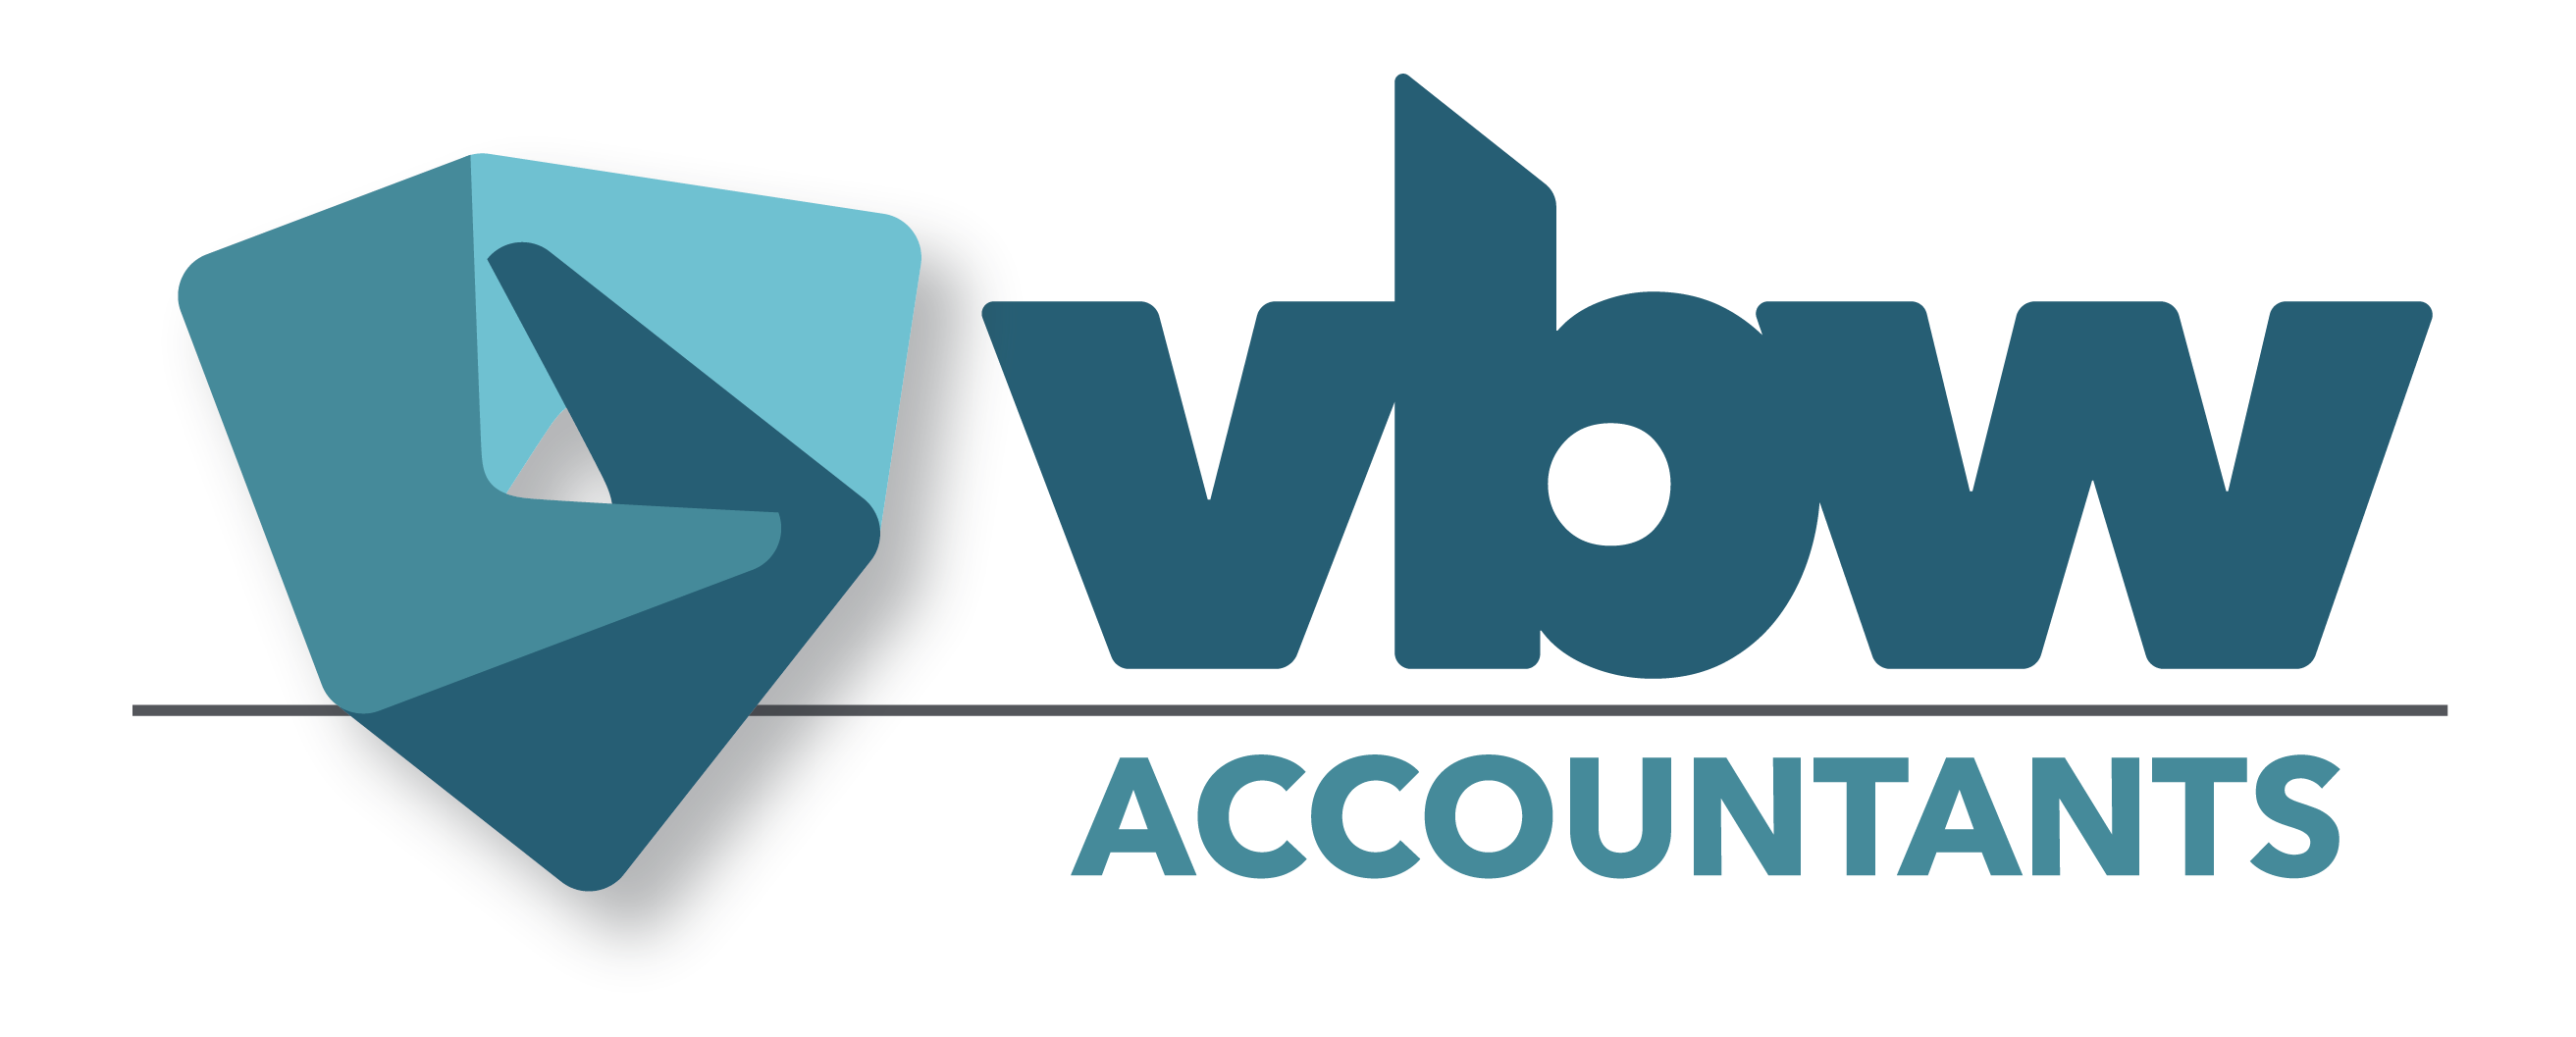 logo Vbw-accountants